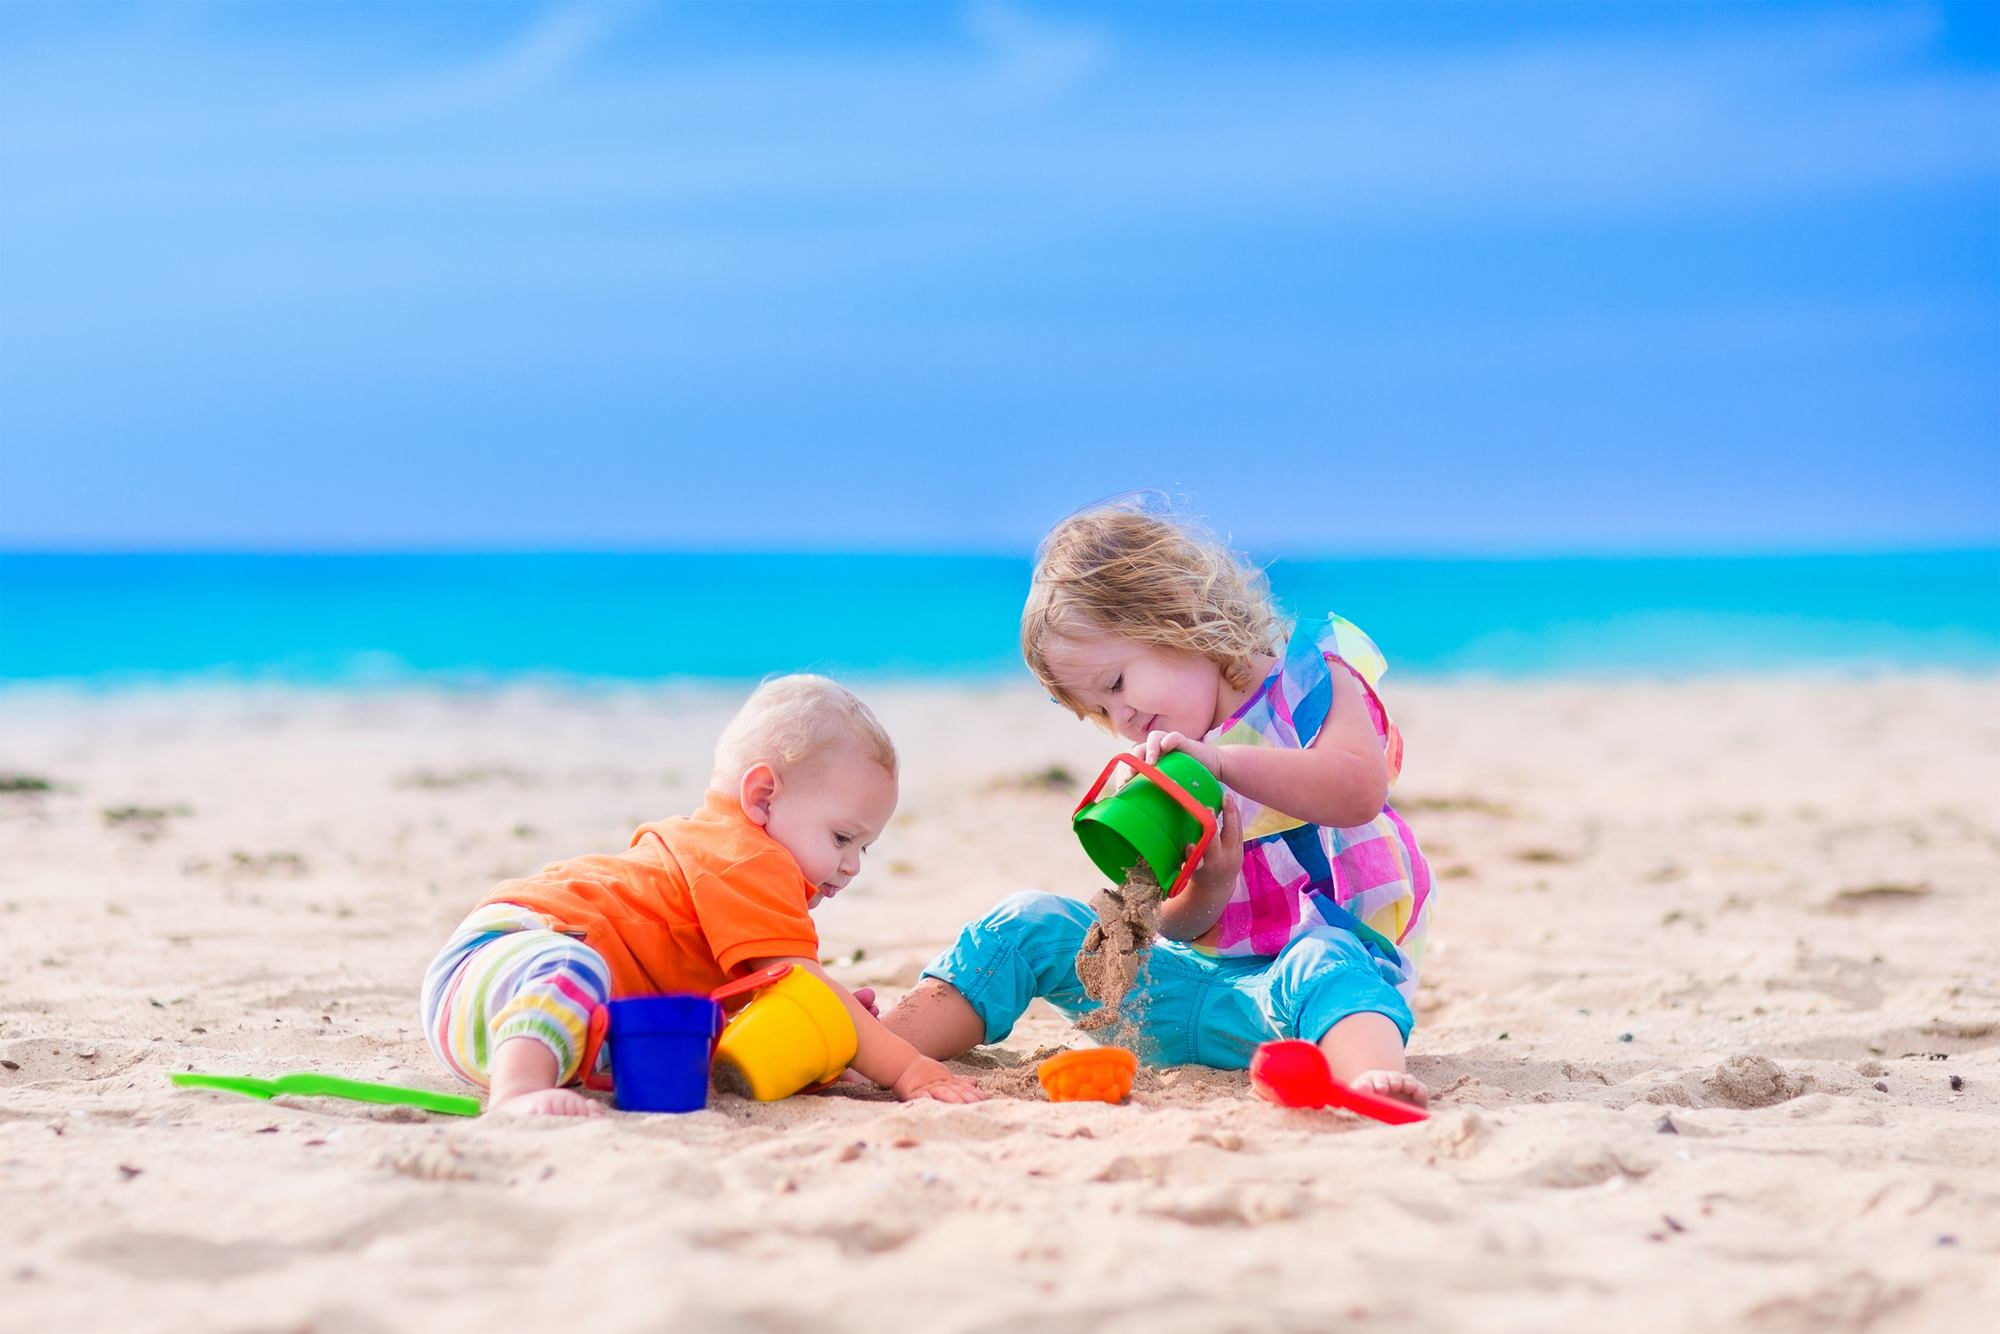 Learn more tips for traveling with babies and toddlers